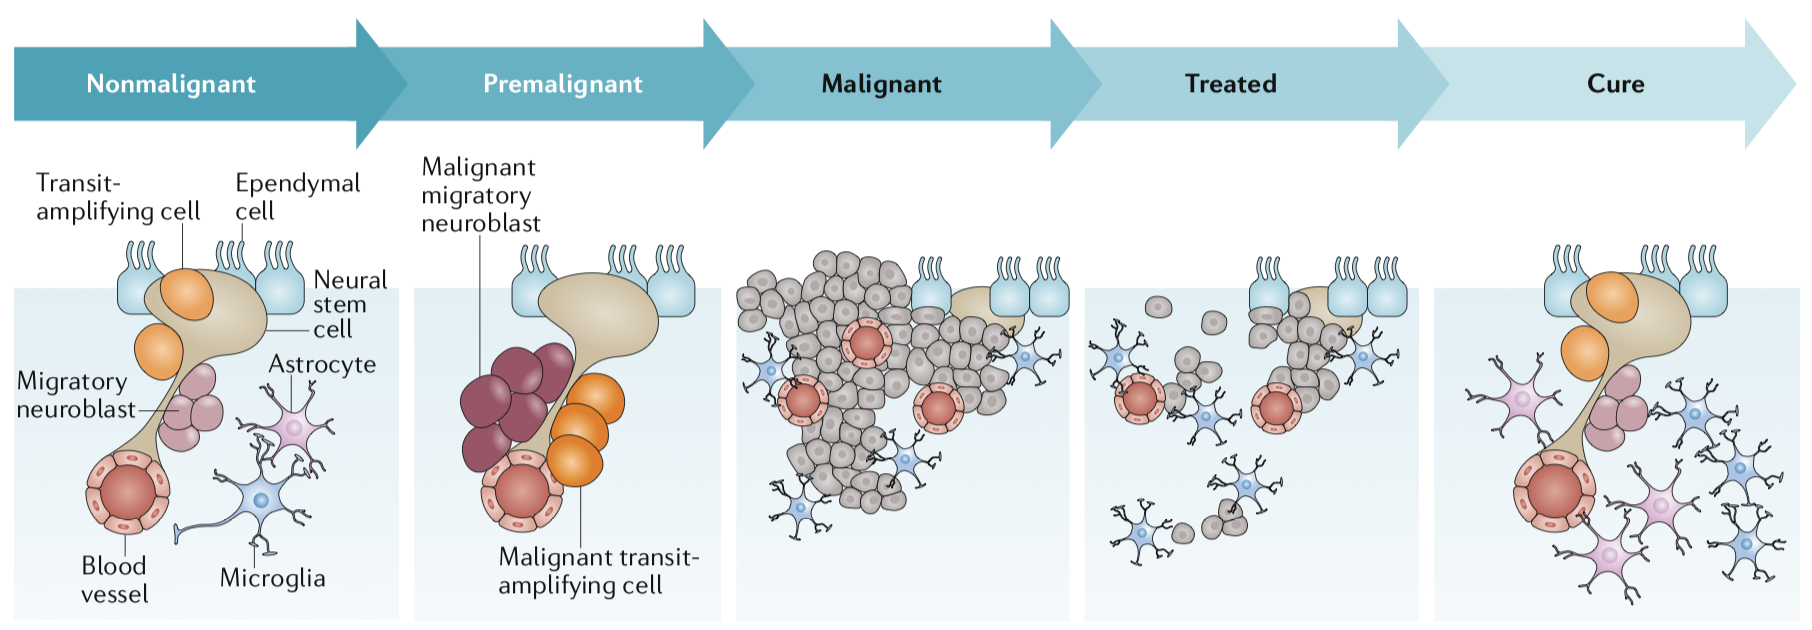 hypothetical progression of a brain tumor through development, treatment, and cure